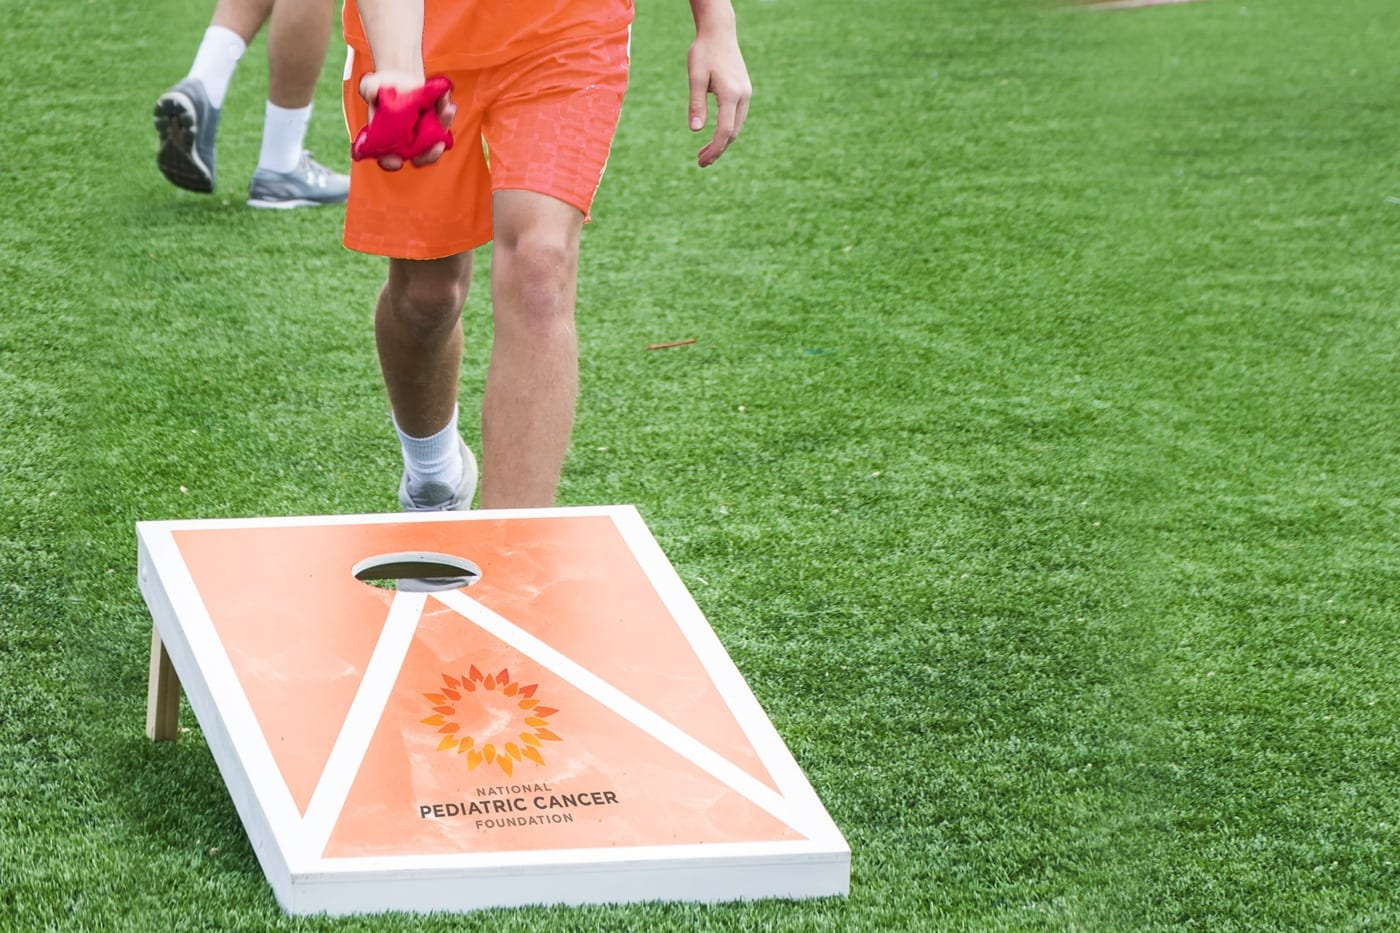 Boy standing behind a NPCF brand cord hole board ready to toss a bean bag